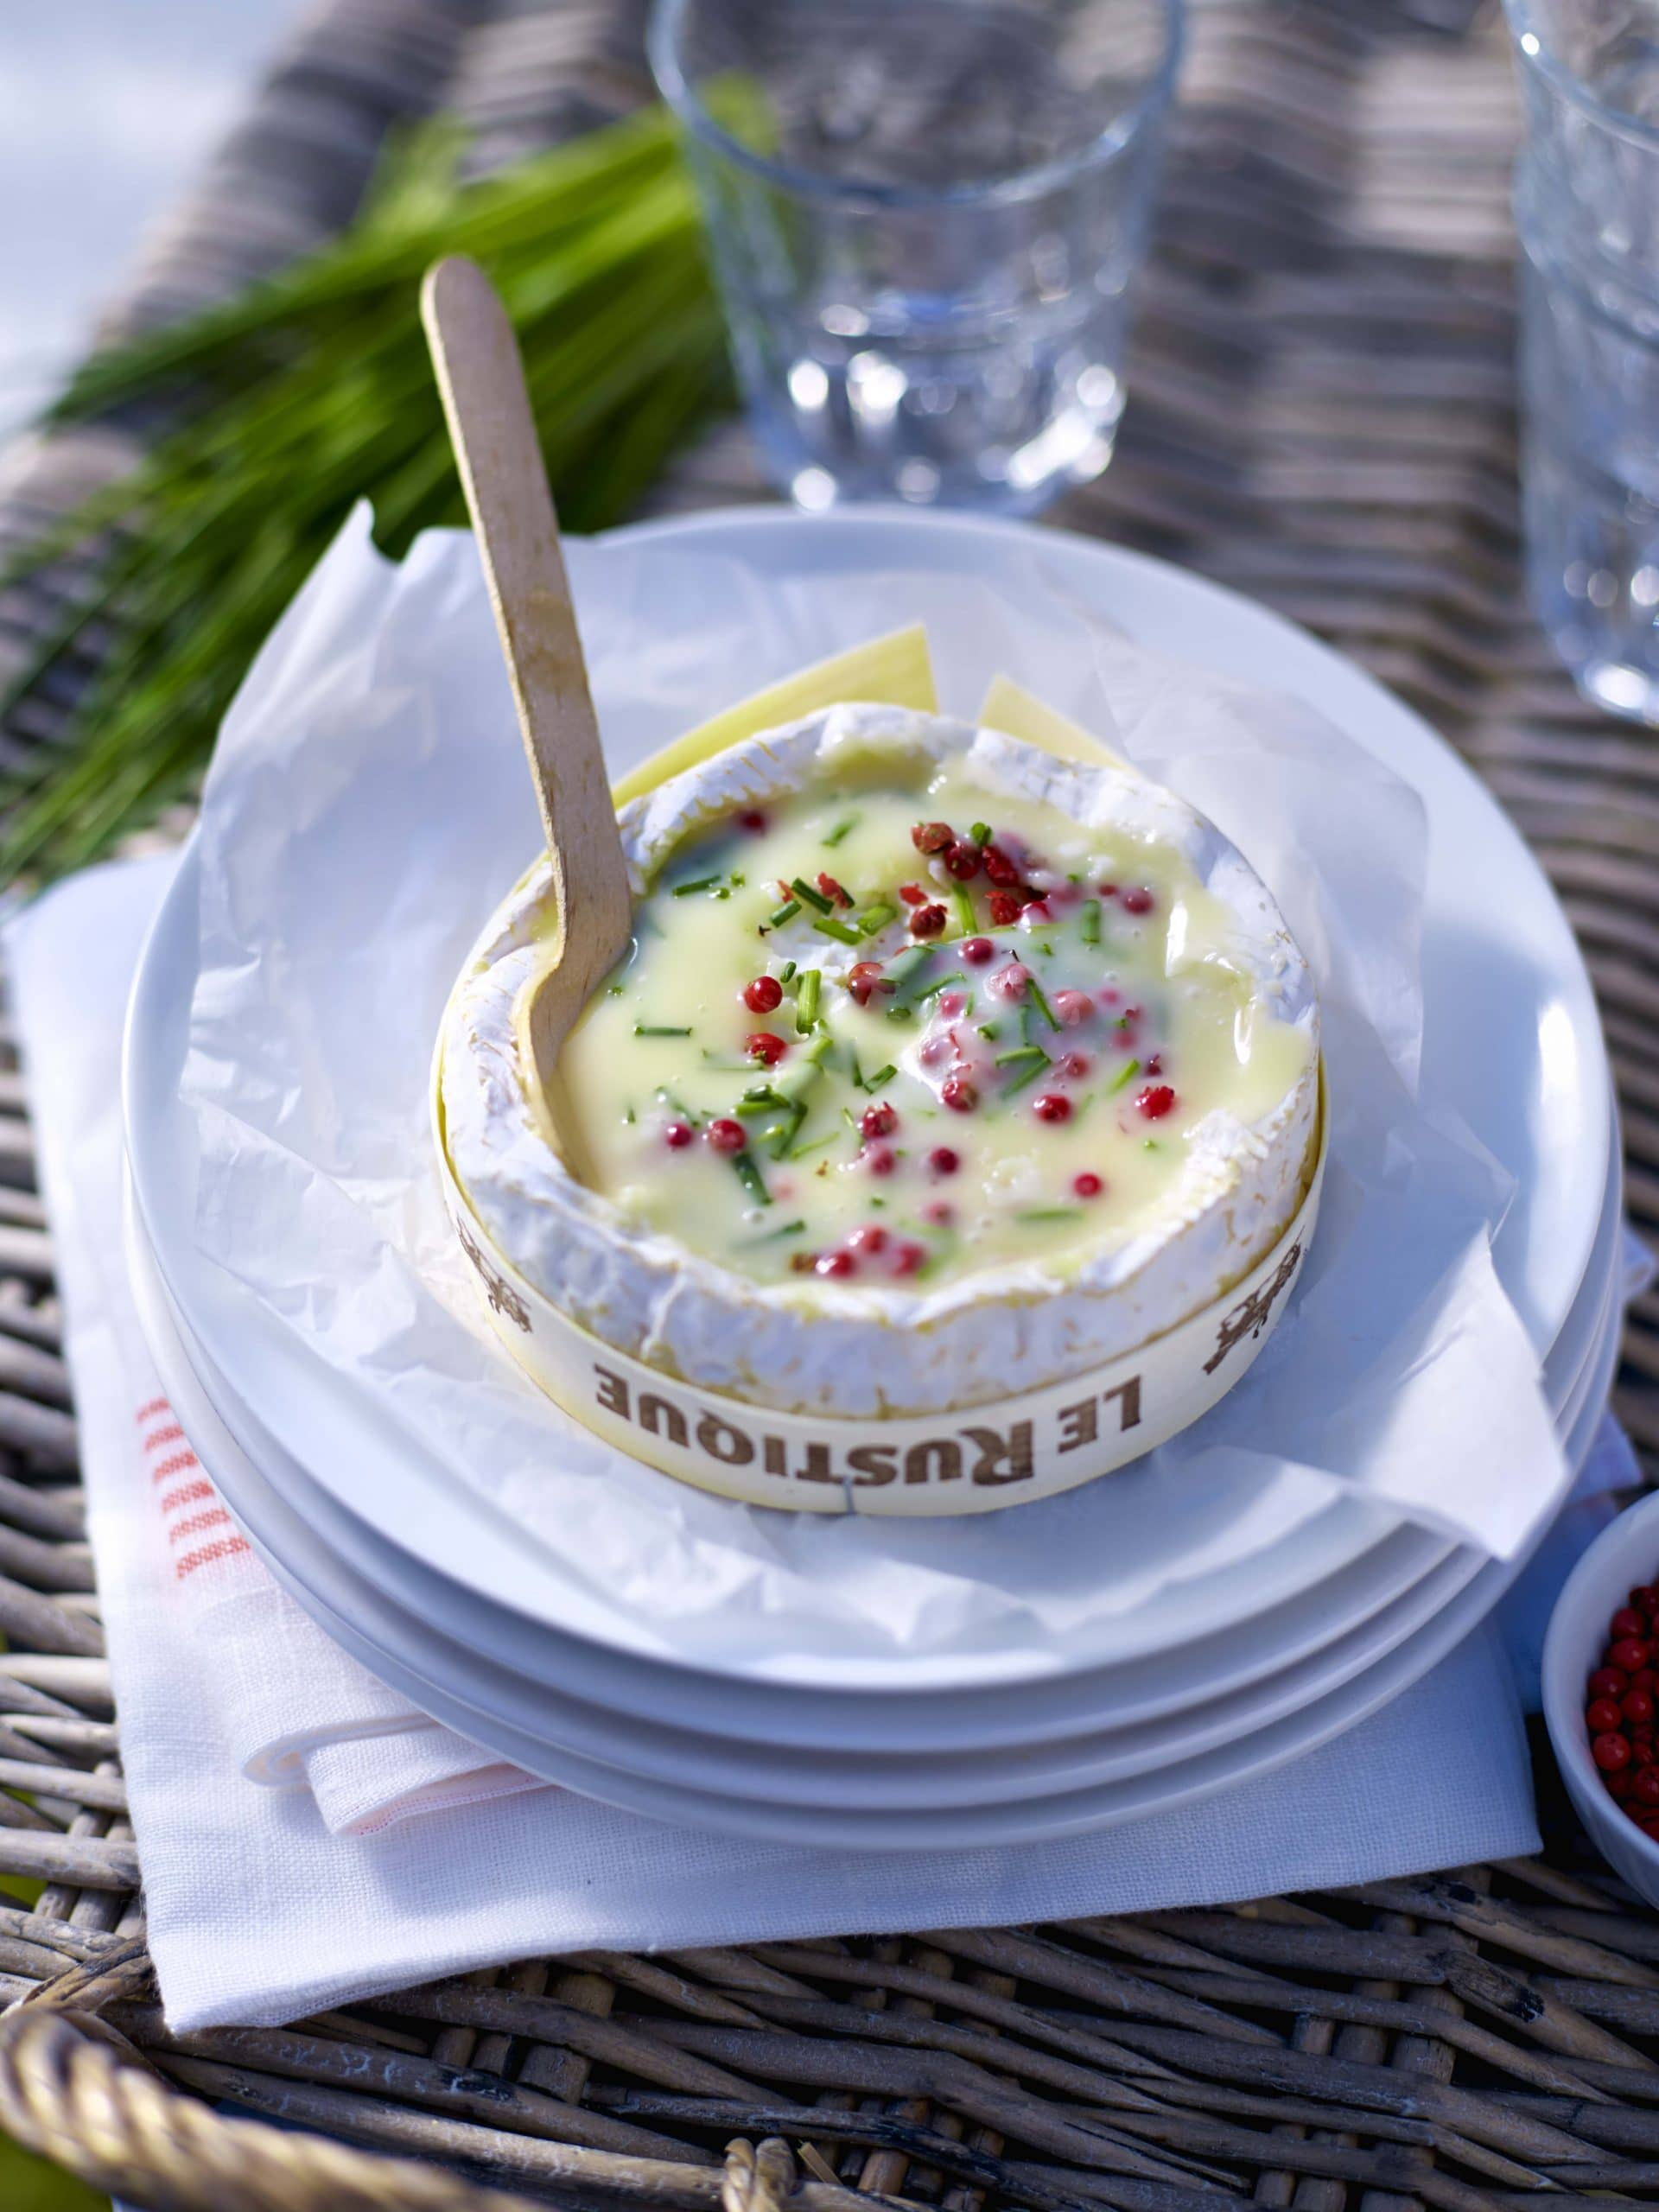 Warme camembert Le Rustique Light met roze peper en bieslook